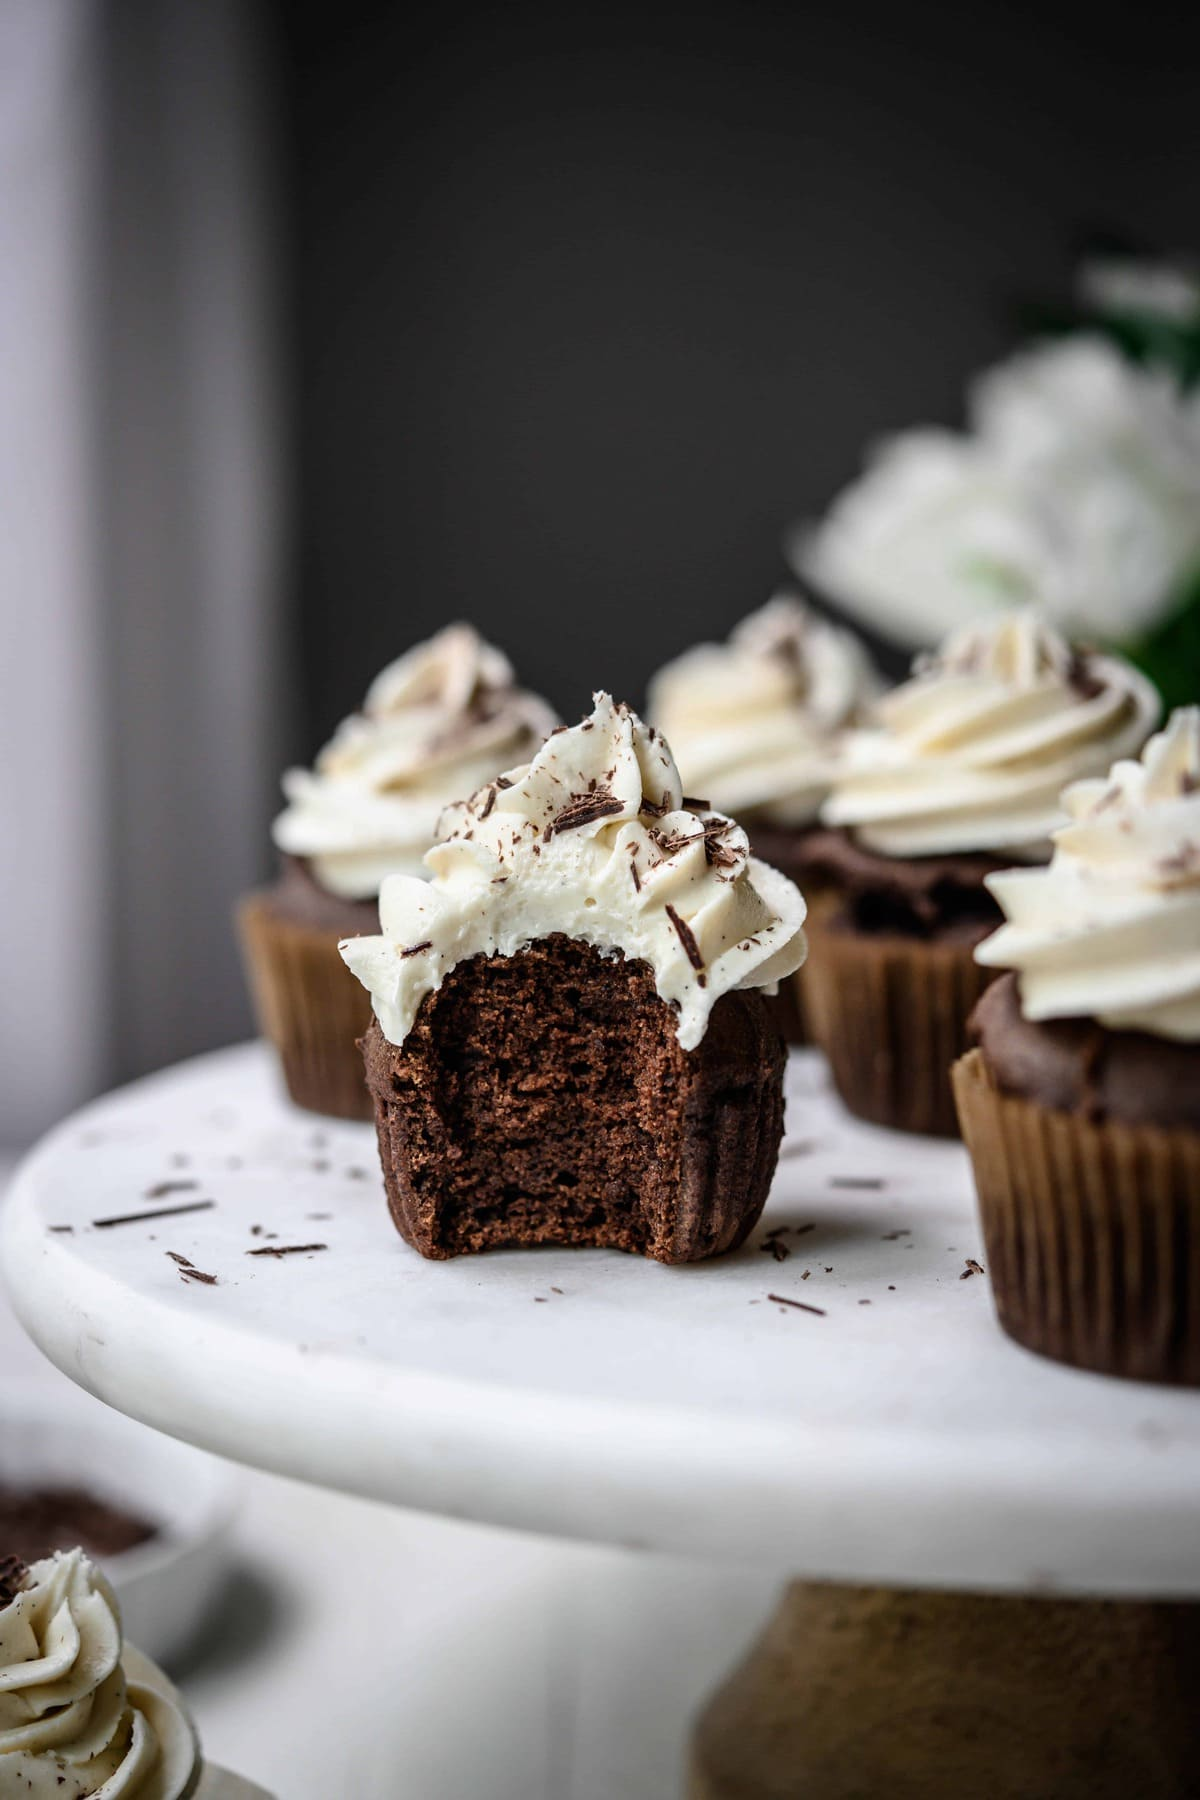 Side view of vegan chocolate cupcakes with vanilla frosting with bite taken out